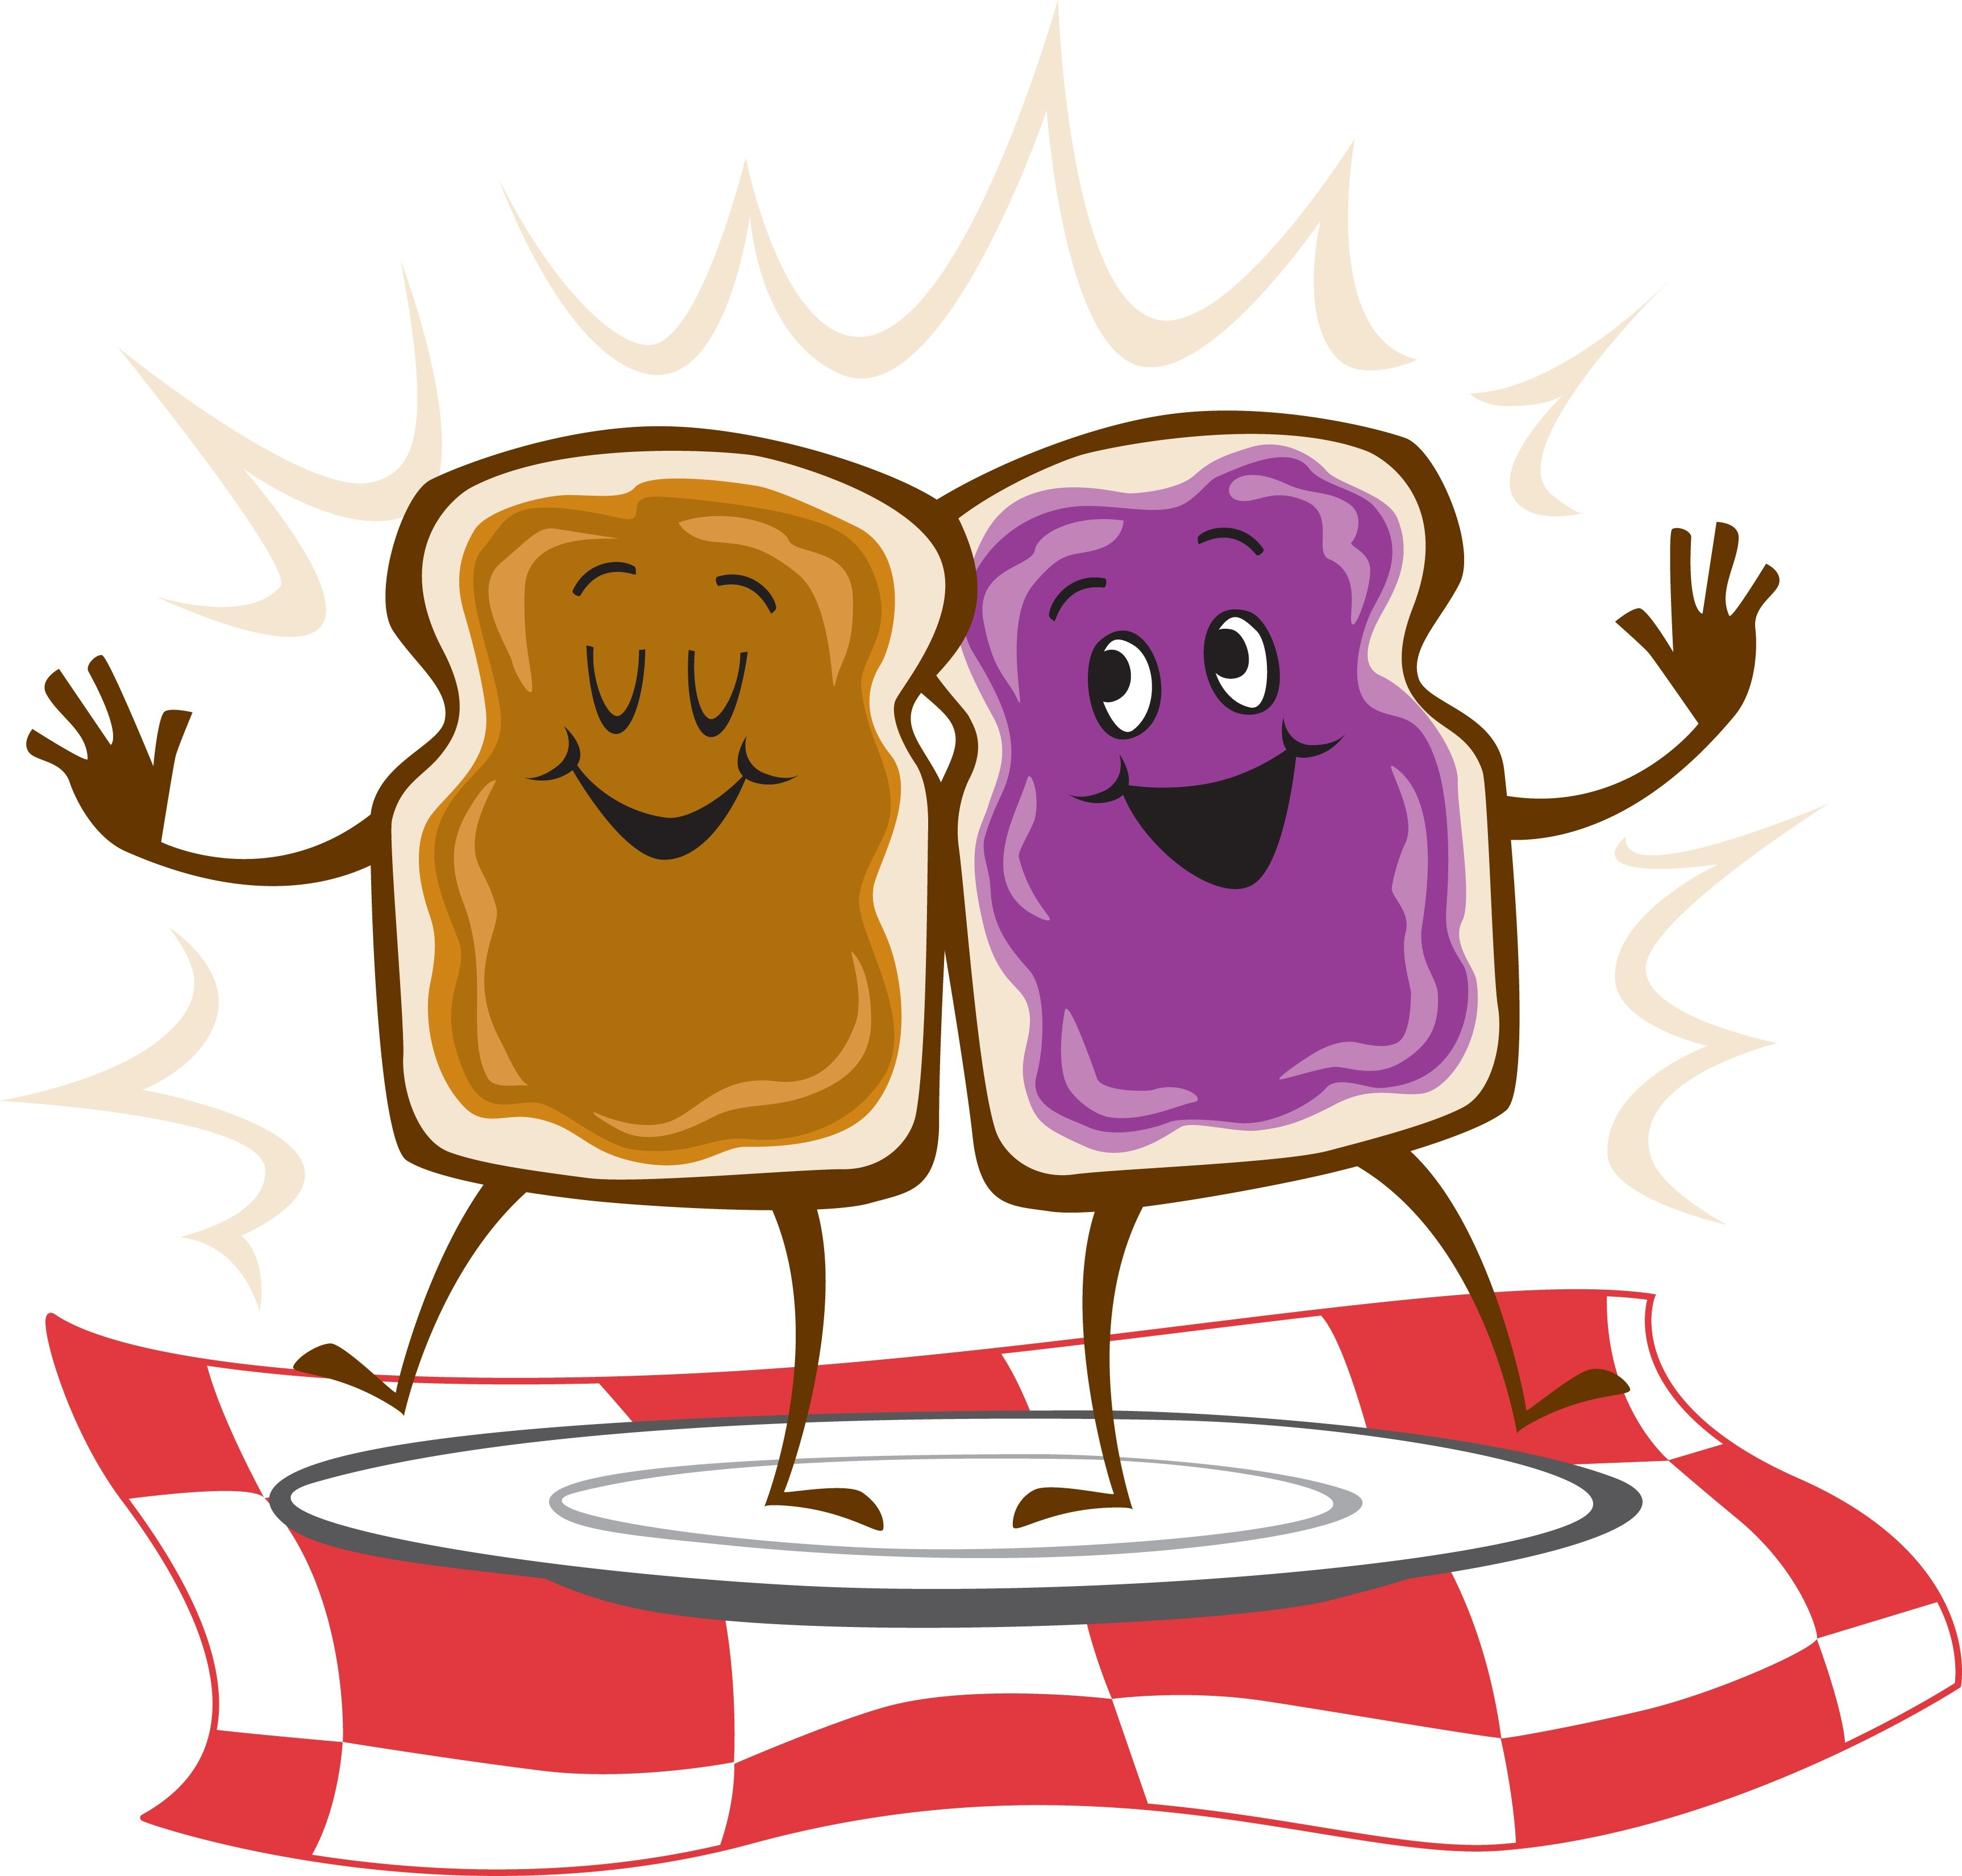 Peanut butter and jelly public domain free clipart banner royalty free library Peanut Butter And Jelly Sandwich Clipart | Free download best Peanut ... banner royalty free library